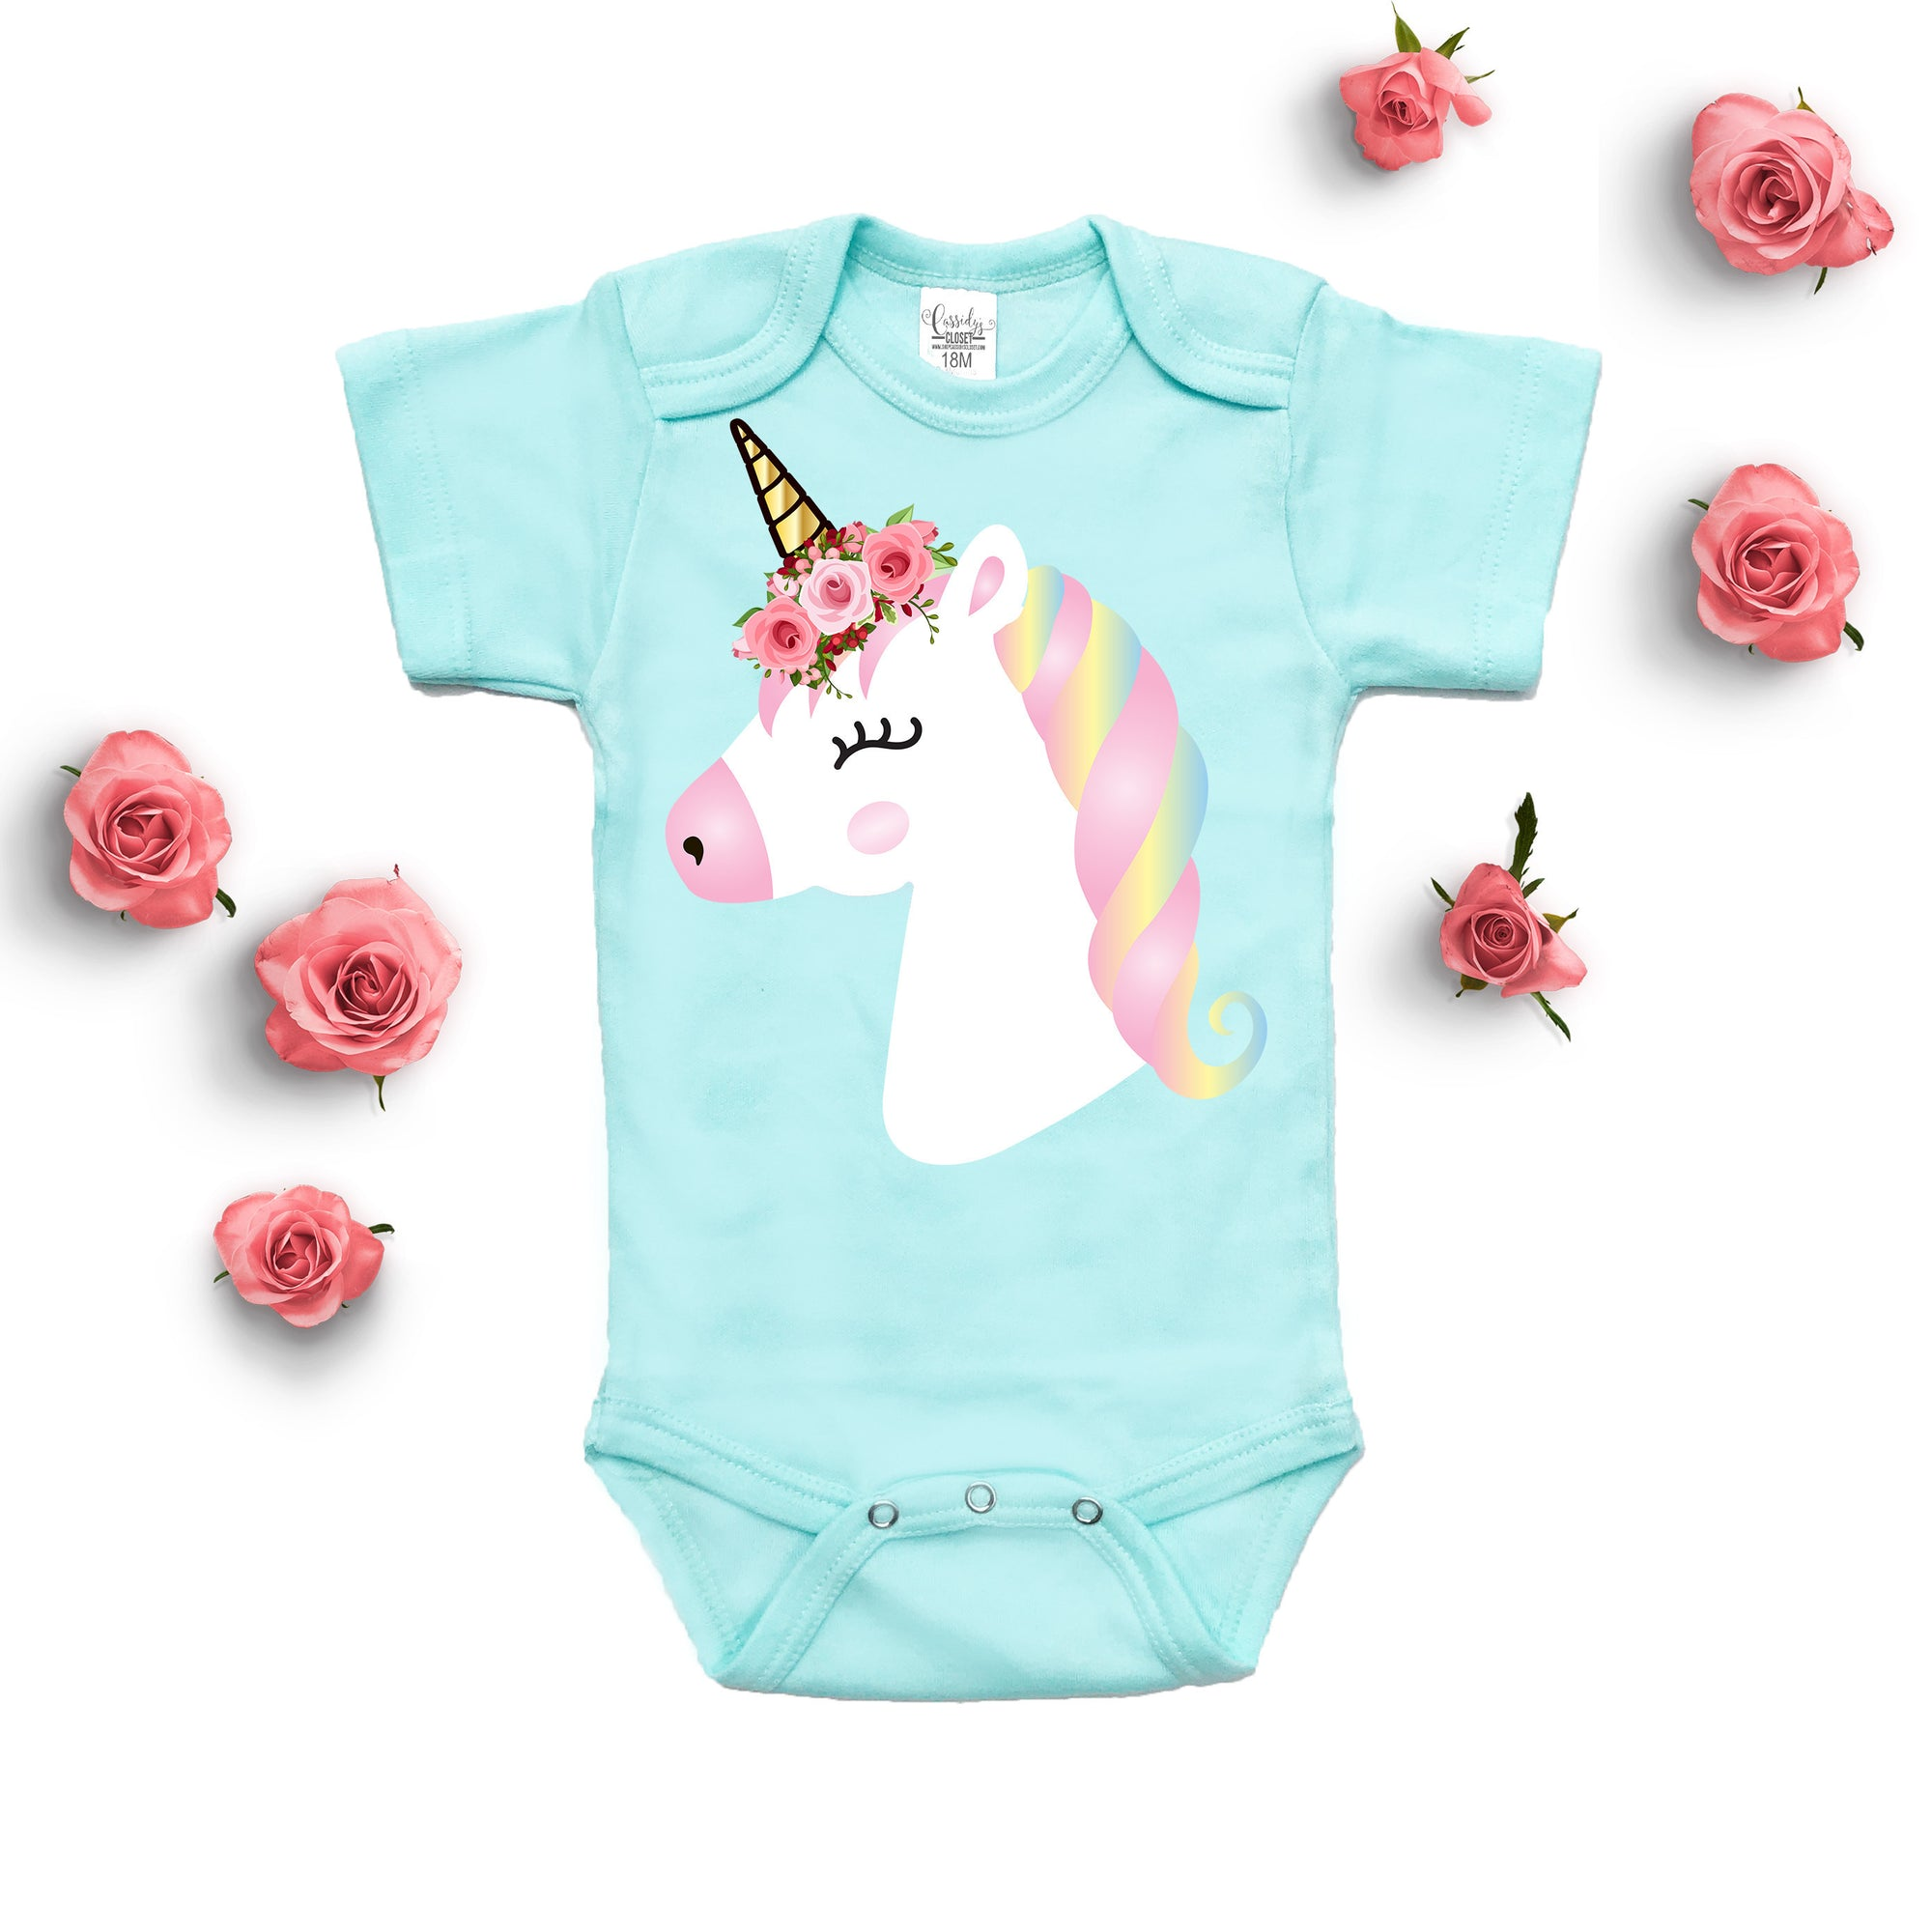 Unicorn Baby Clothes Newest and Cutest Baby Clothing Collection by